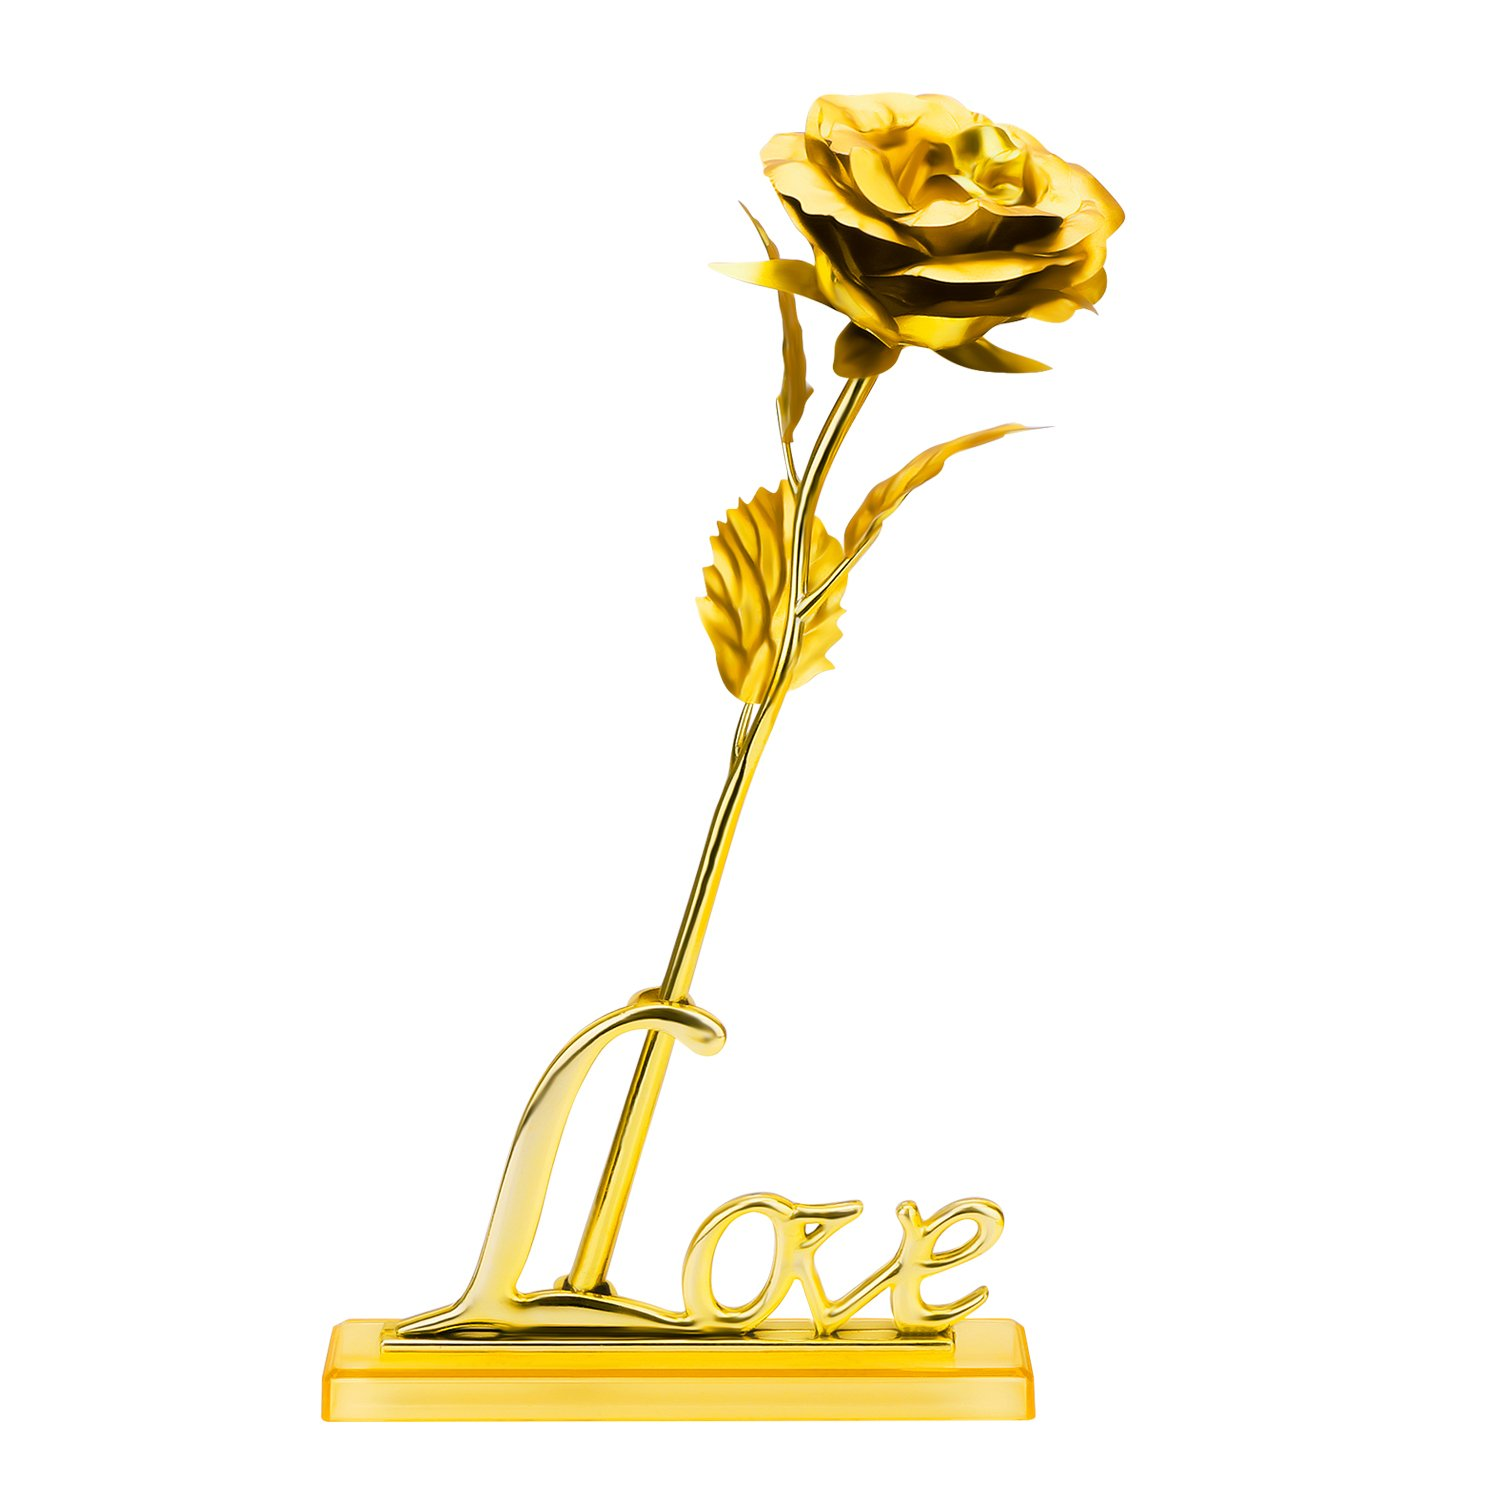 ProCIV Gold Roses, 24K Gold Foil Decoration Artificial Rose Flowers in Gift Box, Best Gift for Mother's Day, Valentine's Day, Wedding Day, Birthday, Christmas, Thanksgiving, Home Decor by ProCIV (Image #2)